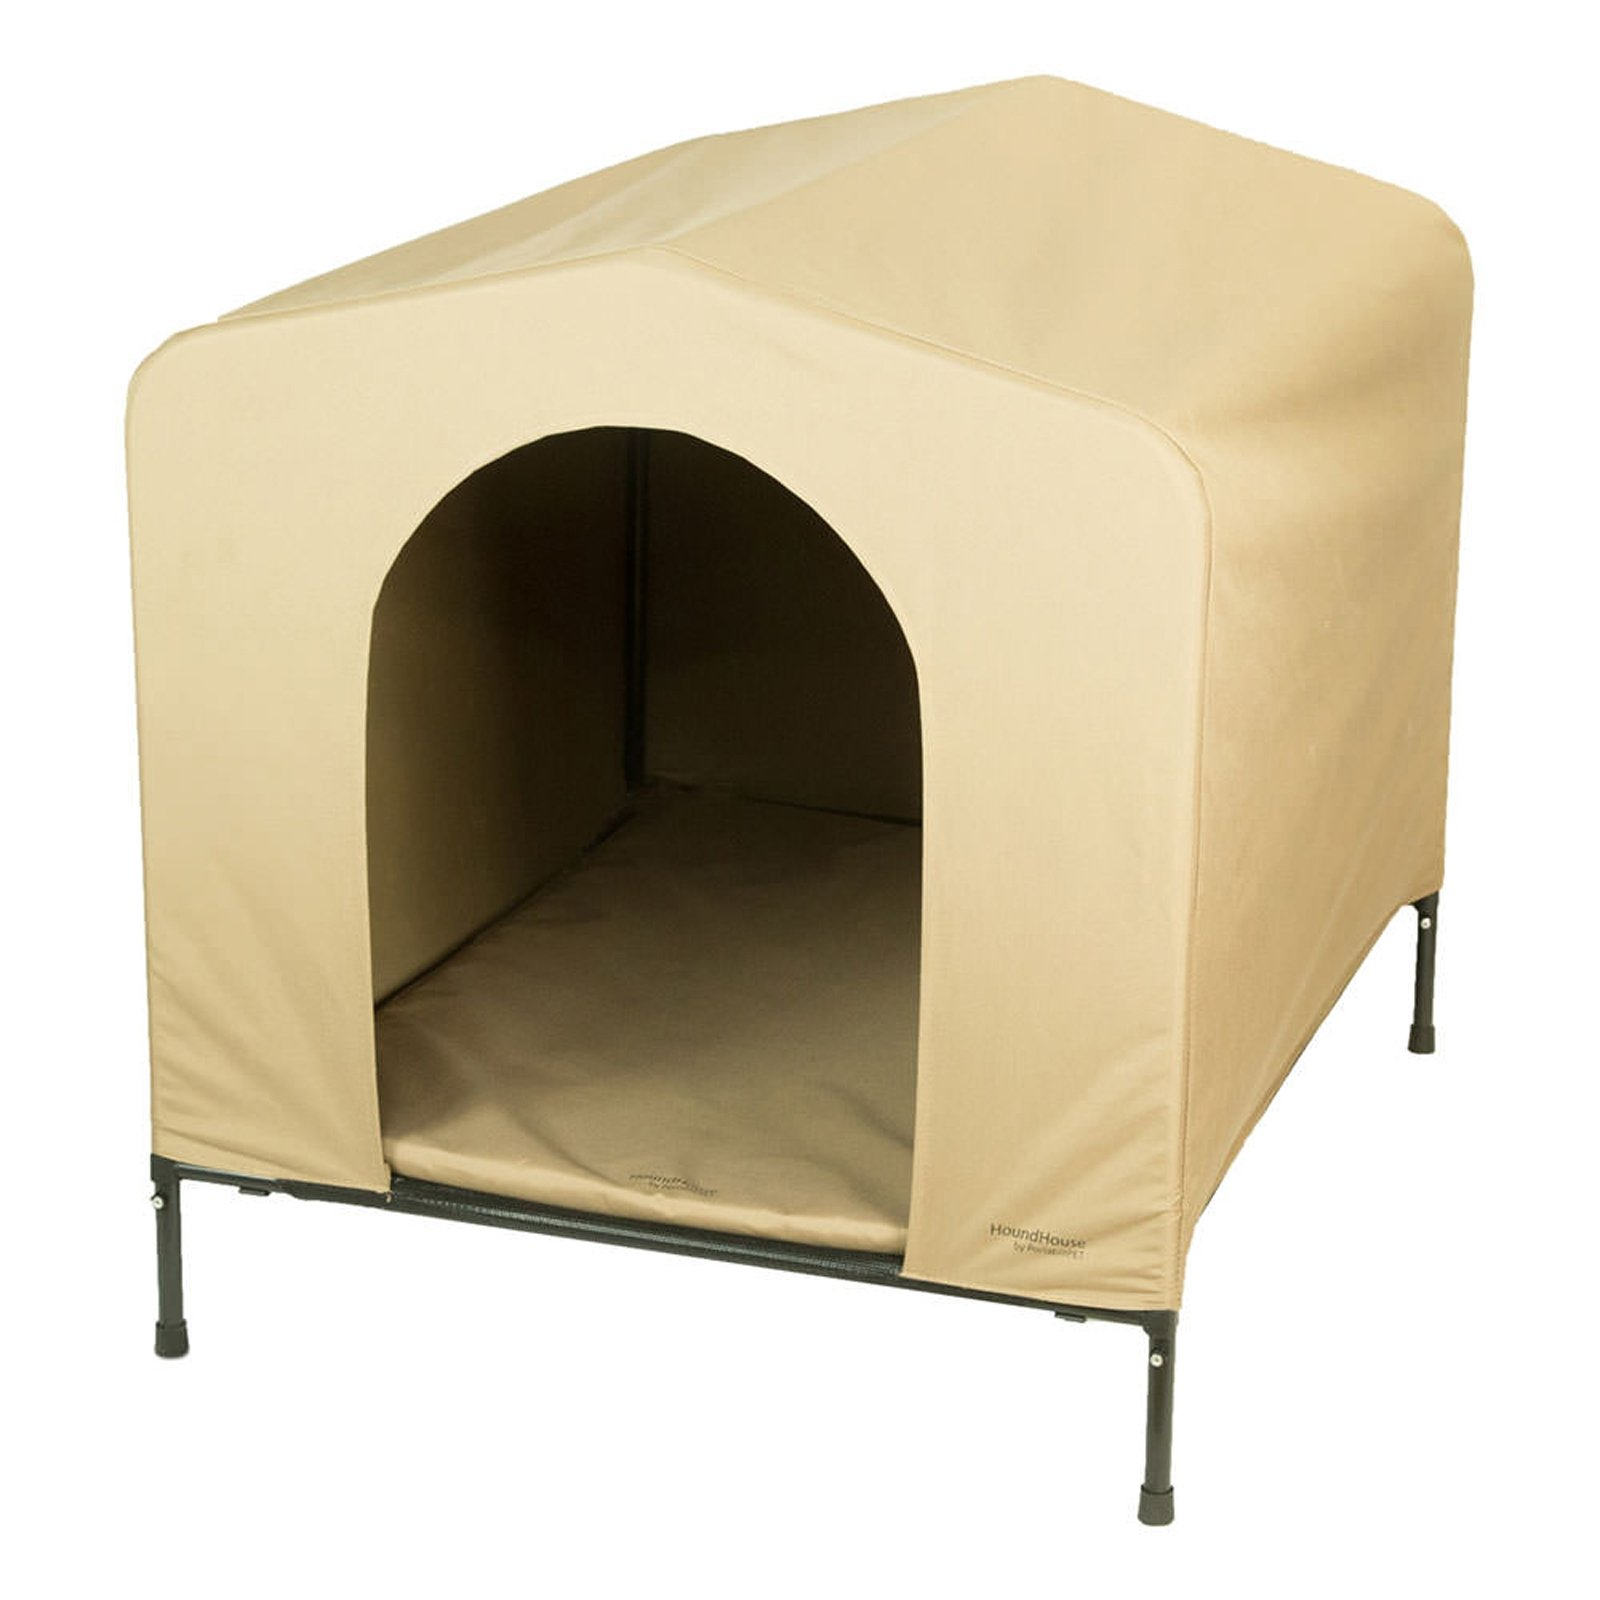 HoundHouse Portable Collapsable Pet Kennel Shelter - Large